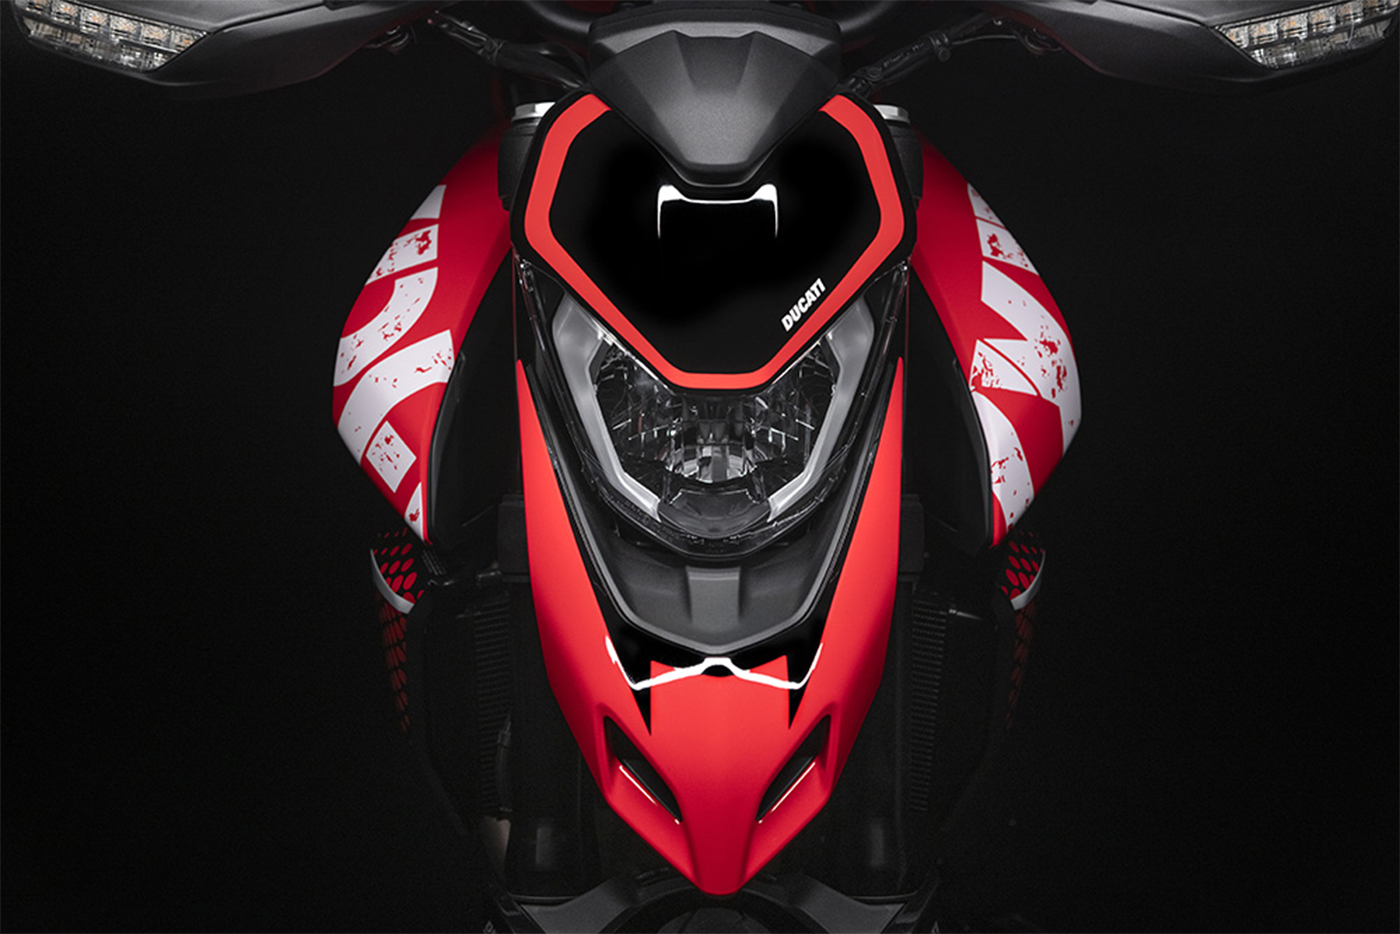 2020-ducati-hypermotard-950-rve-low-res-6.jpg